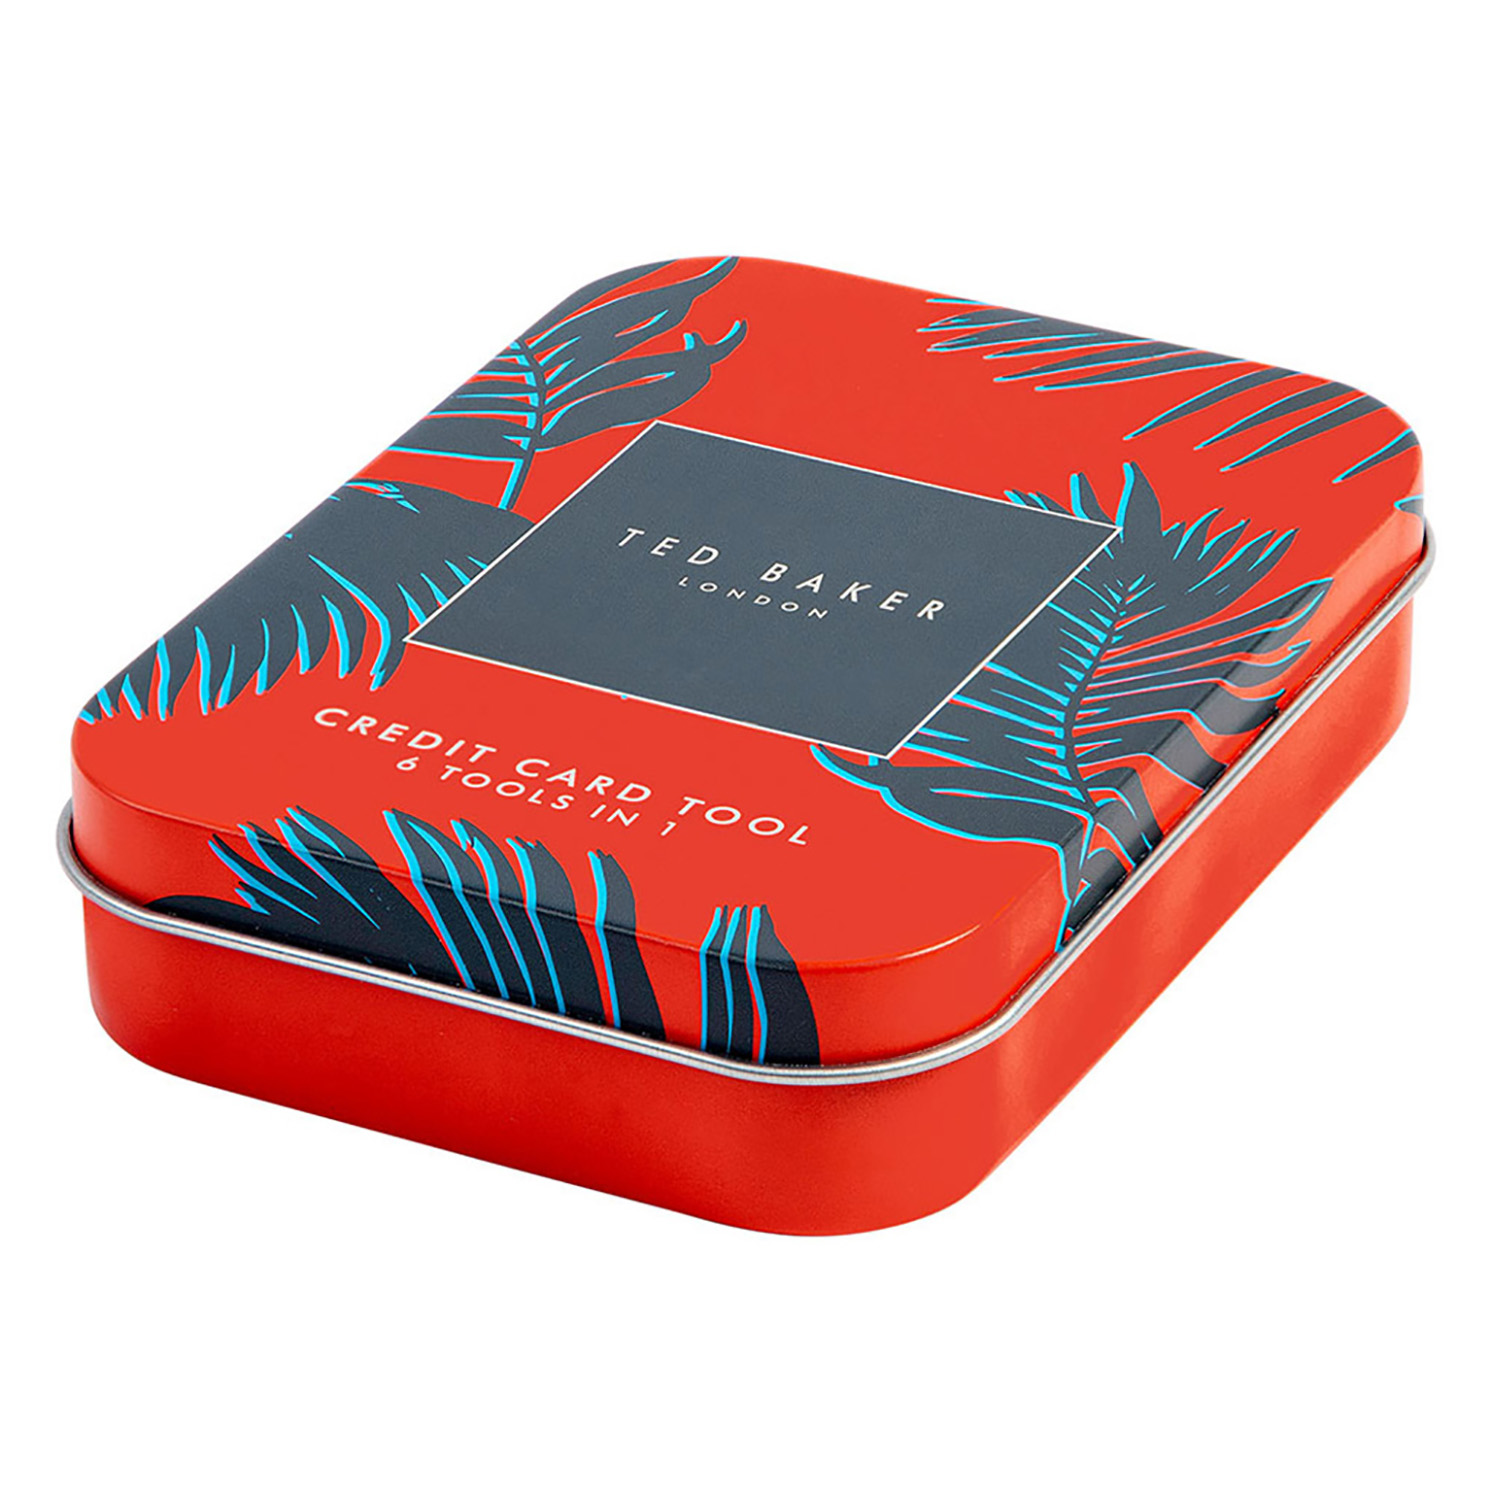 Ted Baker – Credit Card 6 in 1 Tool in Presentation Gift Tin